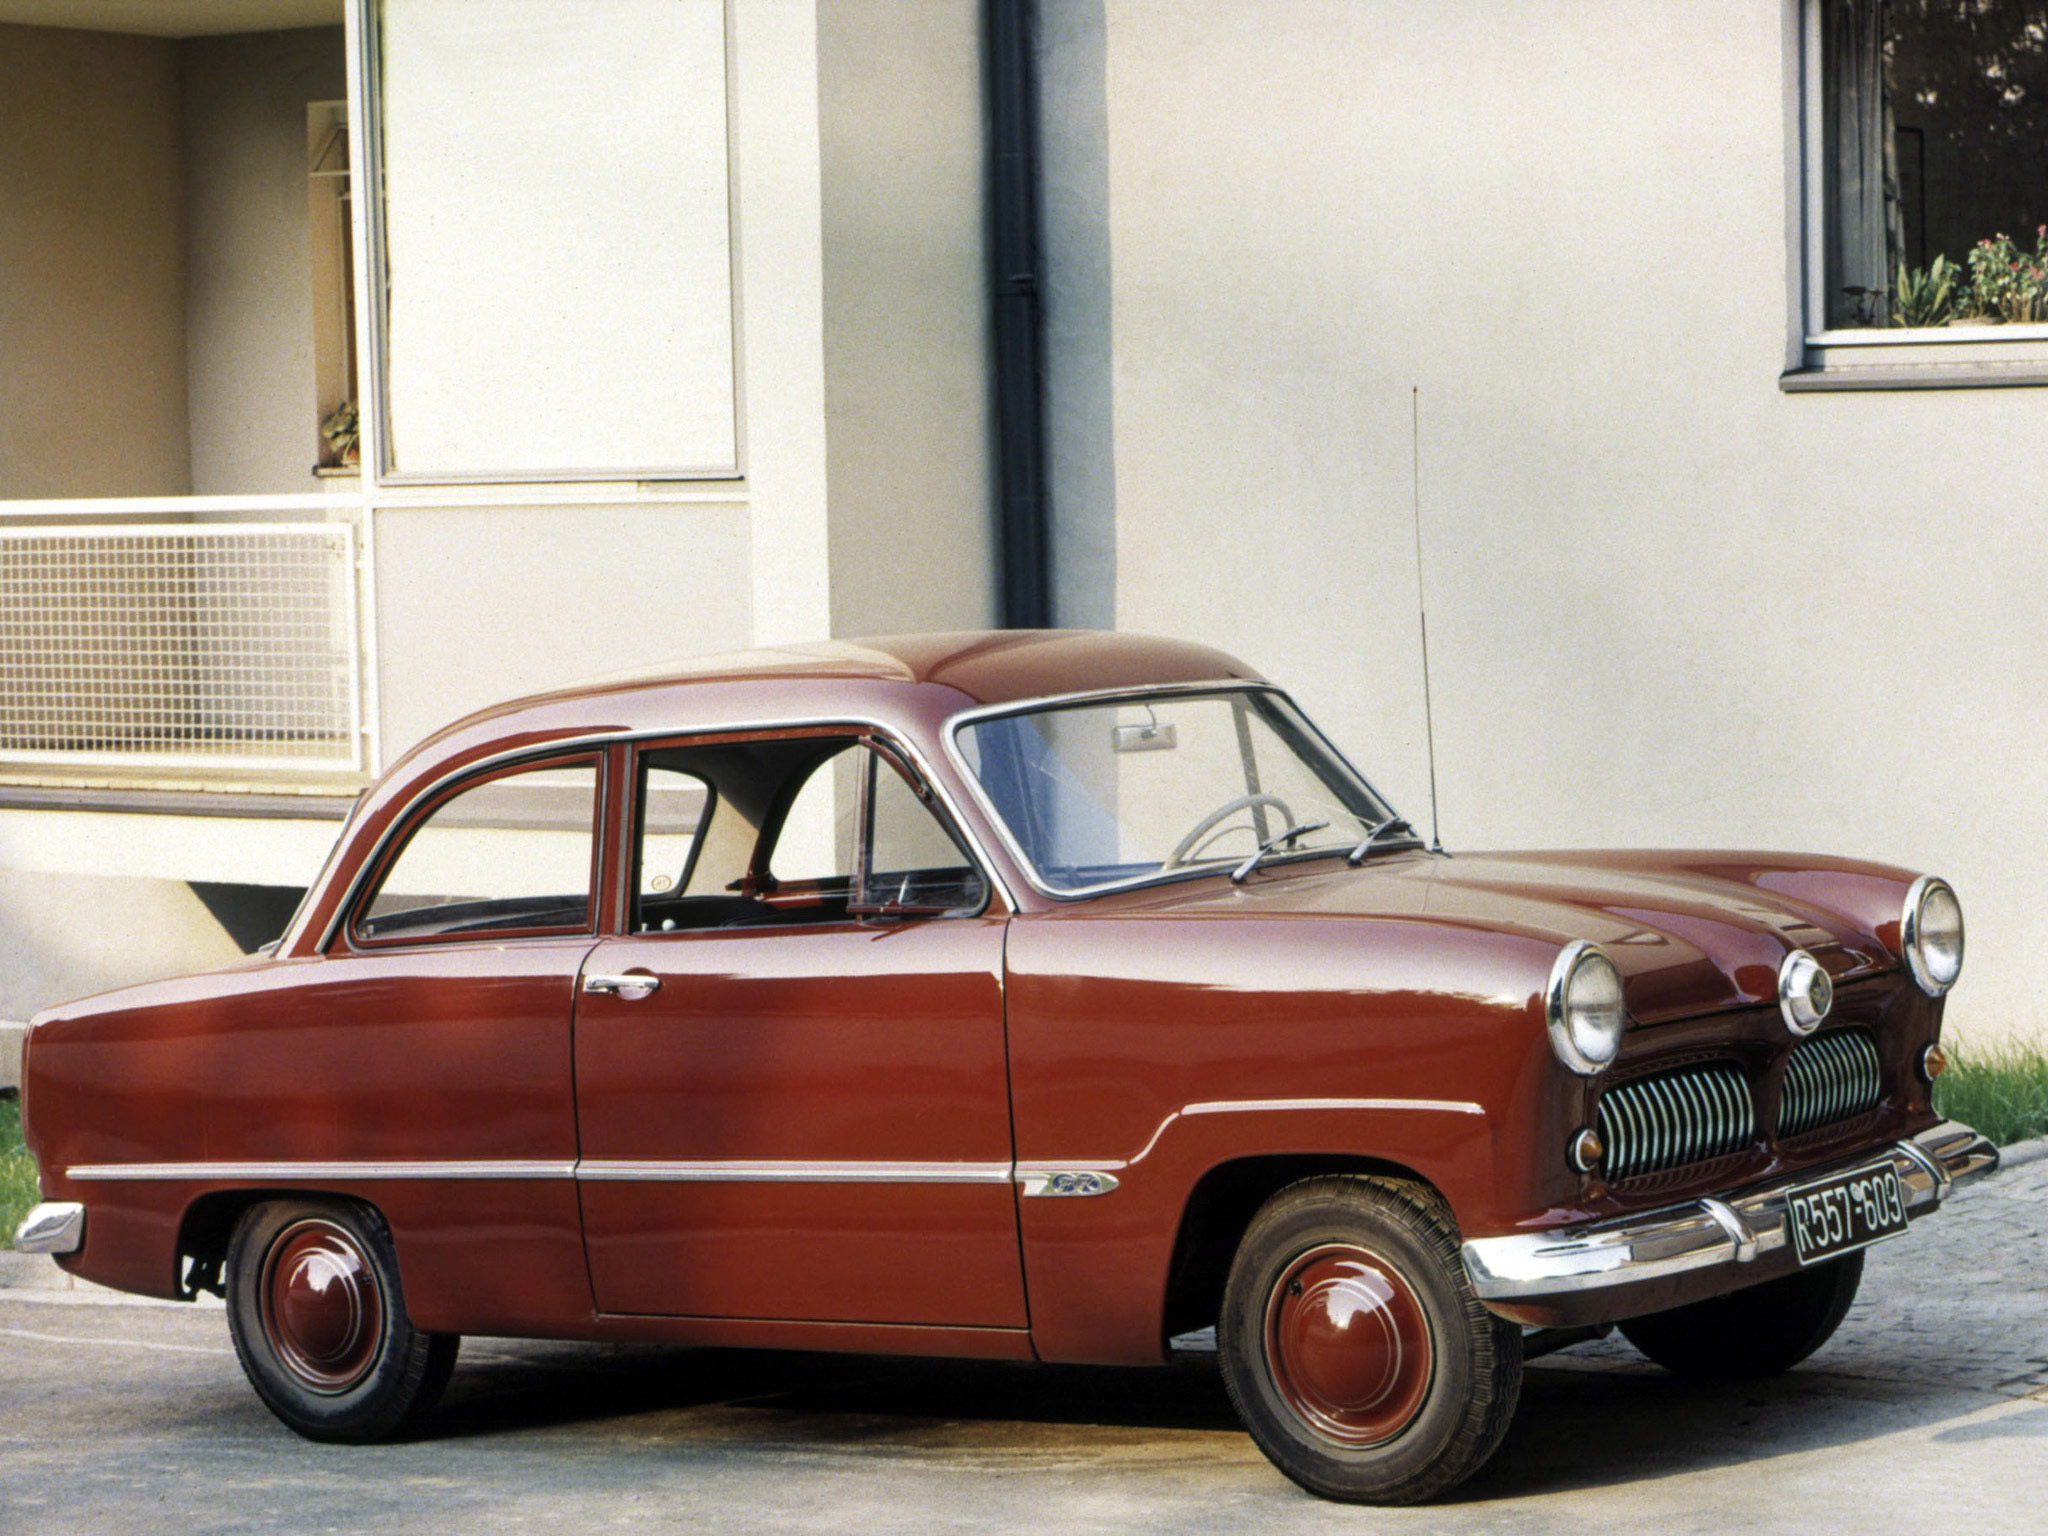 Ford Taunus 1950 photo - 1